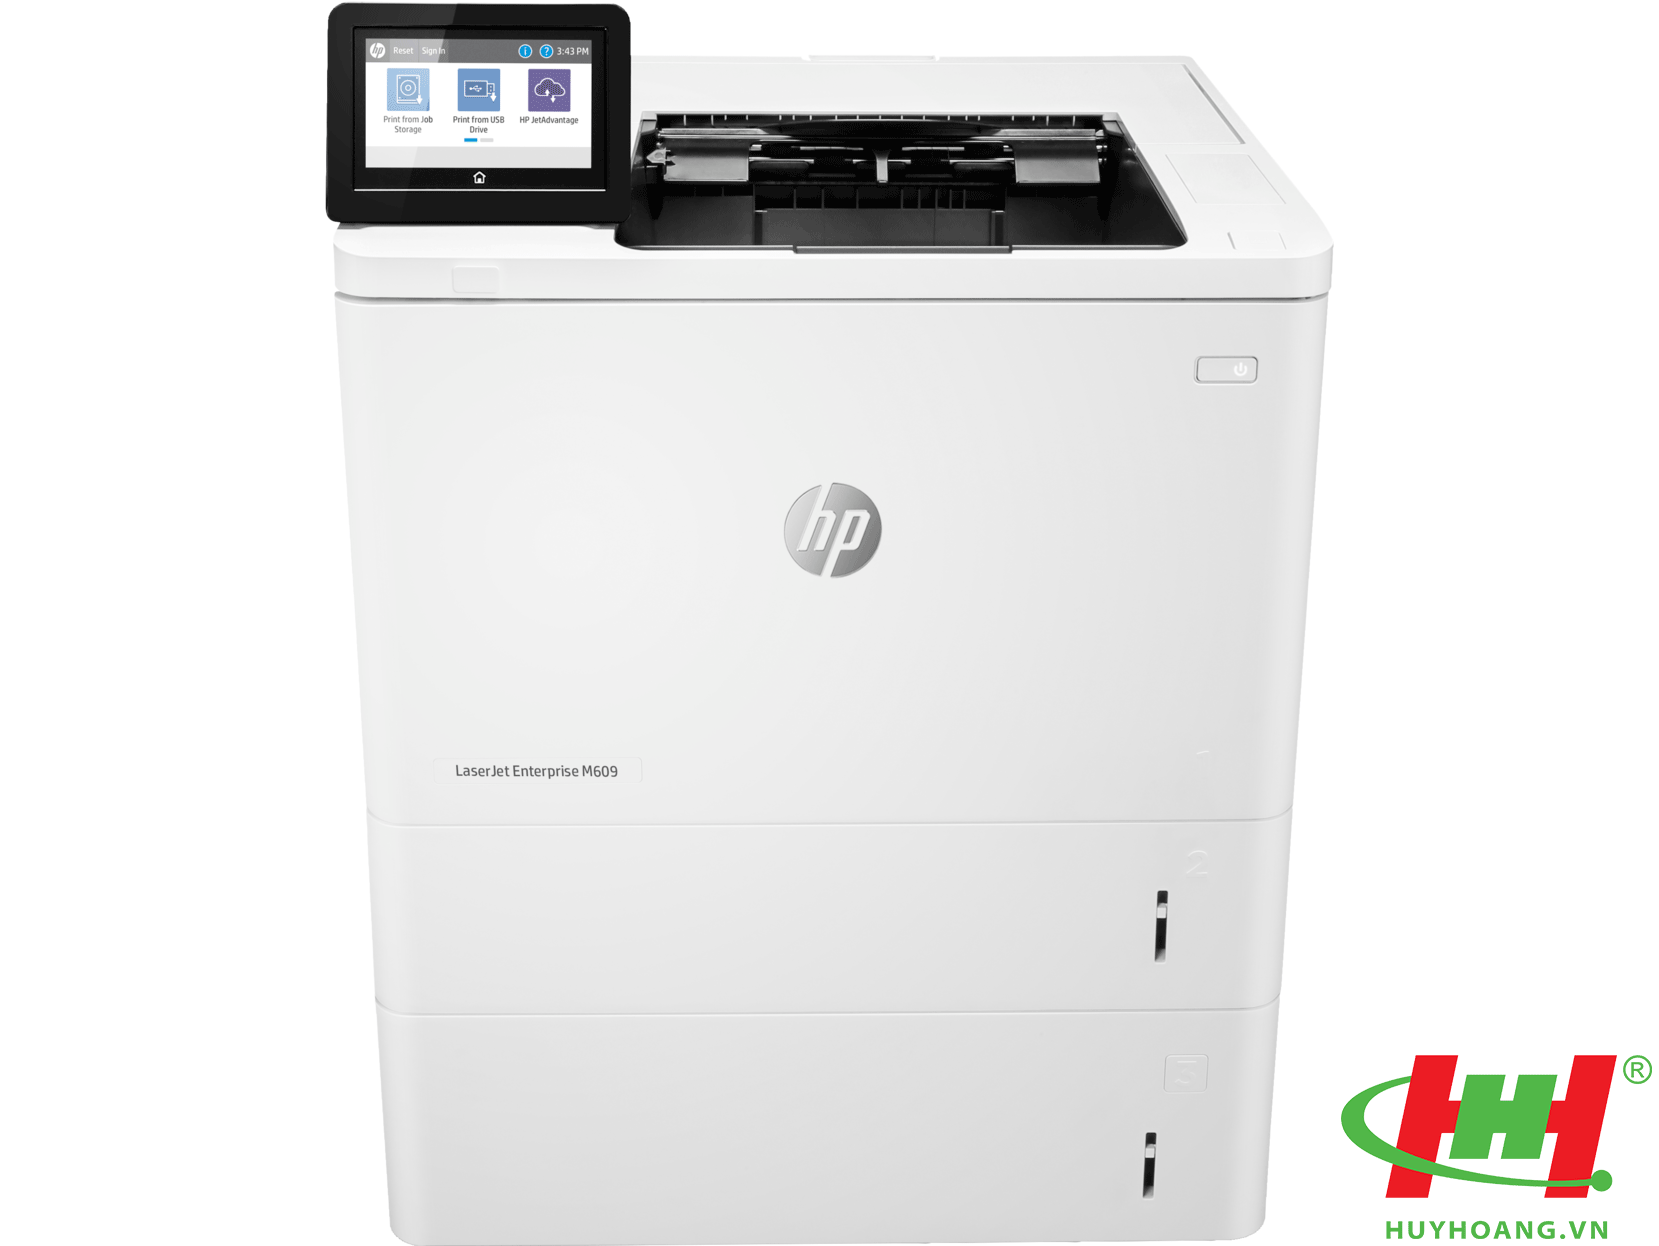 Máy in HP LaserJet Enterprise M609x (K0Q22A) Network,  Duplex,  Wifi